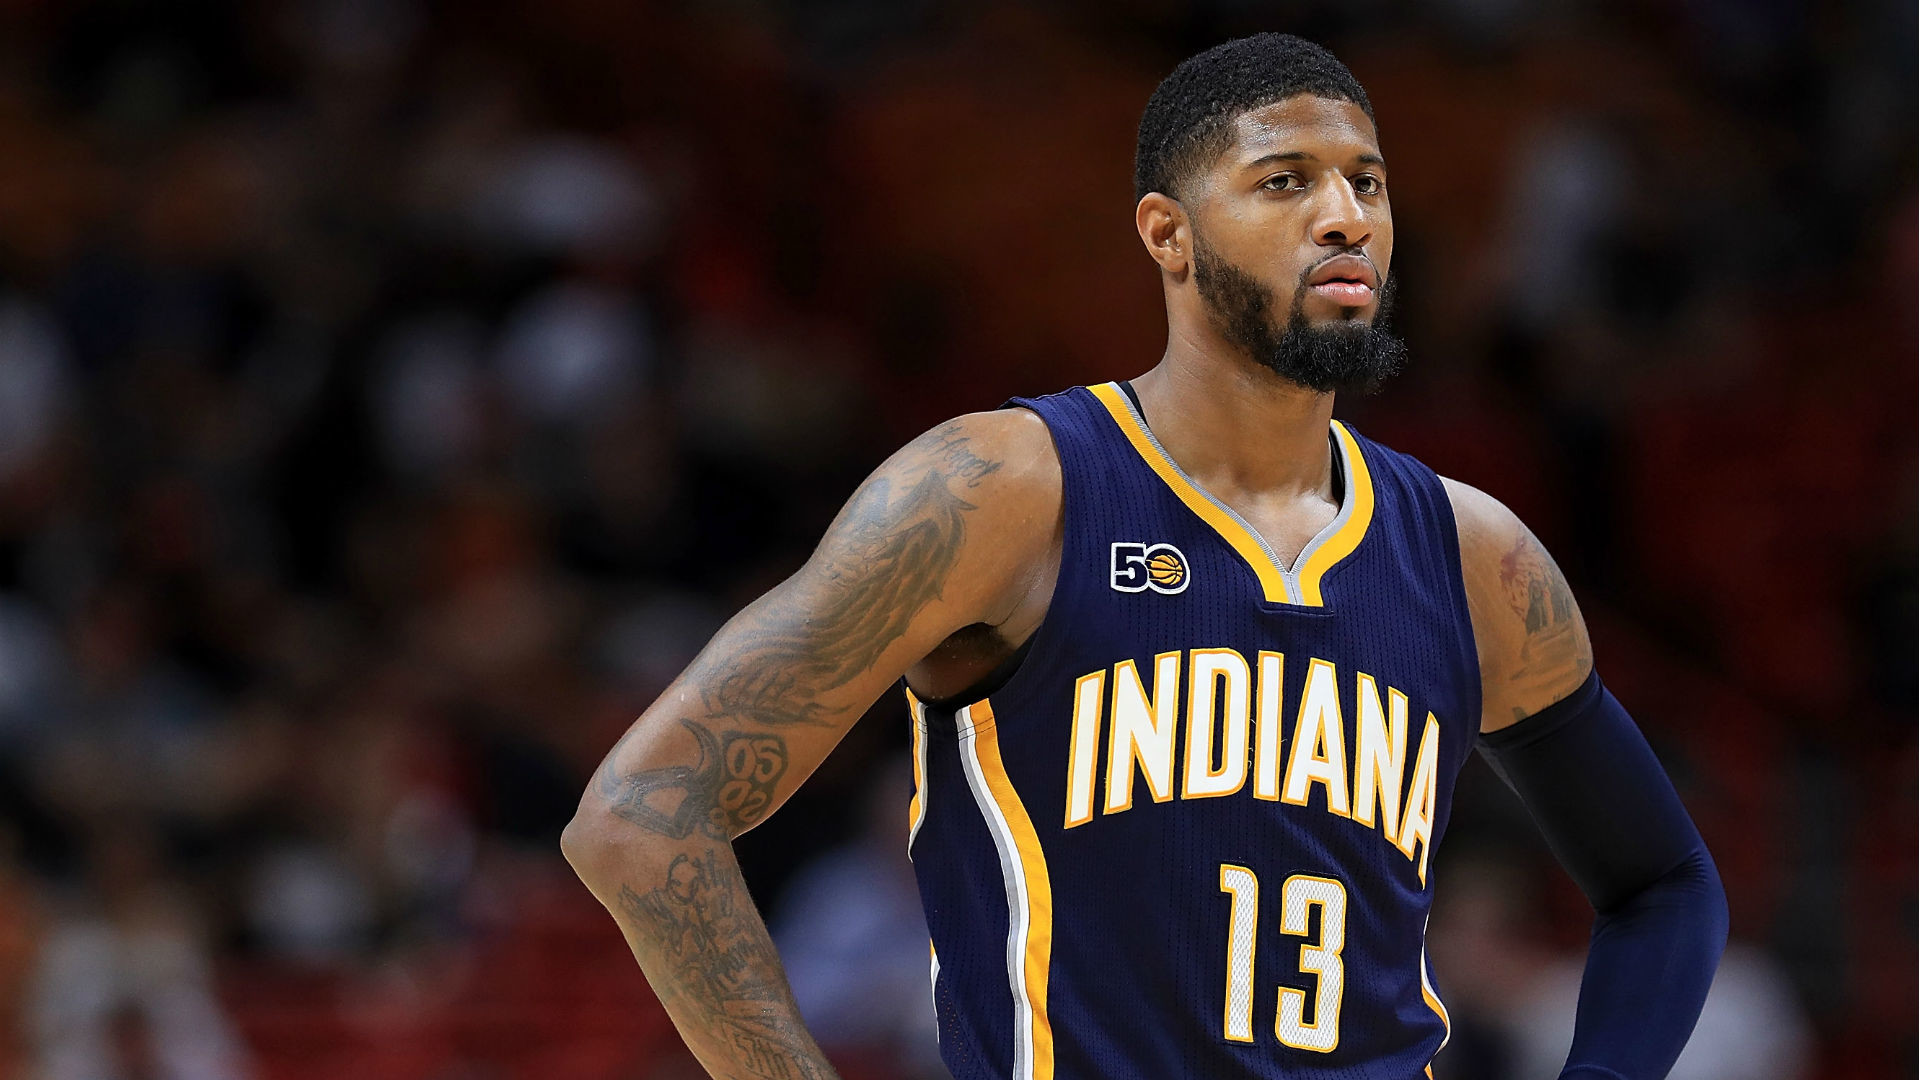 Pacers' Paul George says he needs to get back to 'having fun' | NBA |  Sporting News